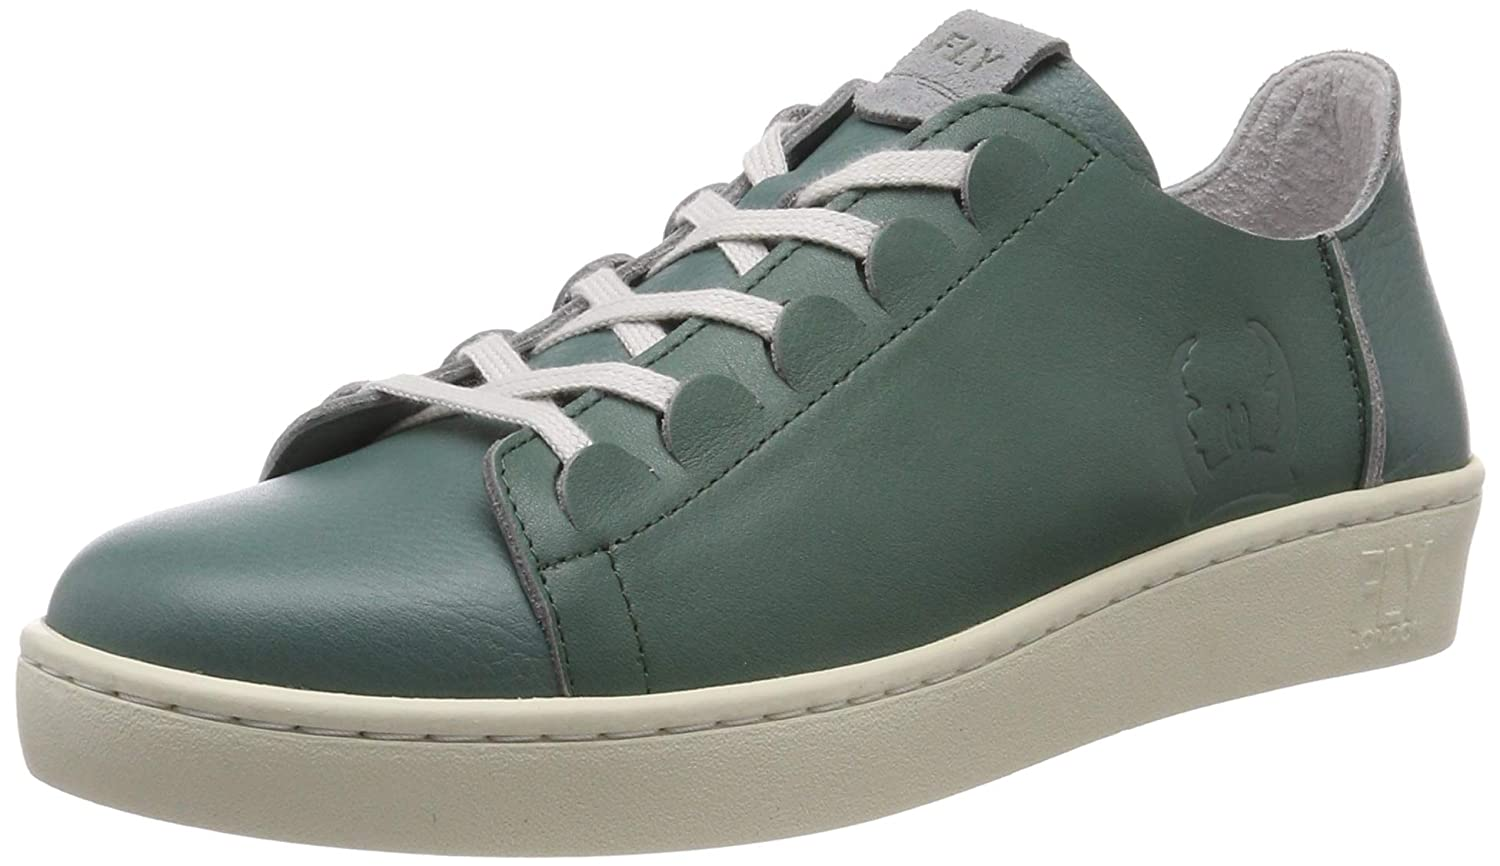 a5ca2718162f8 Fly London Women's's Note359fly Trainers